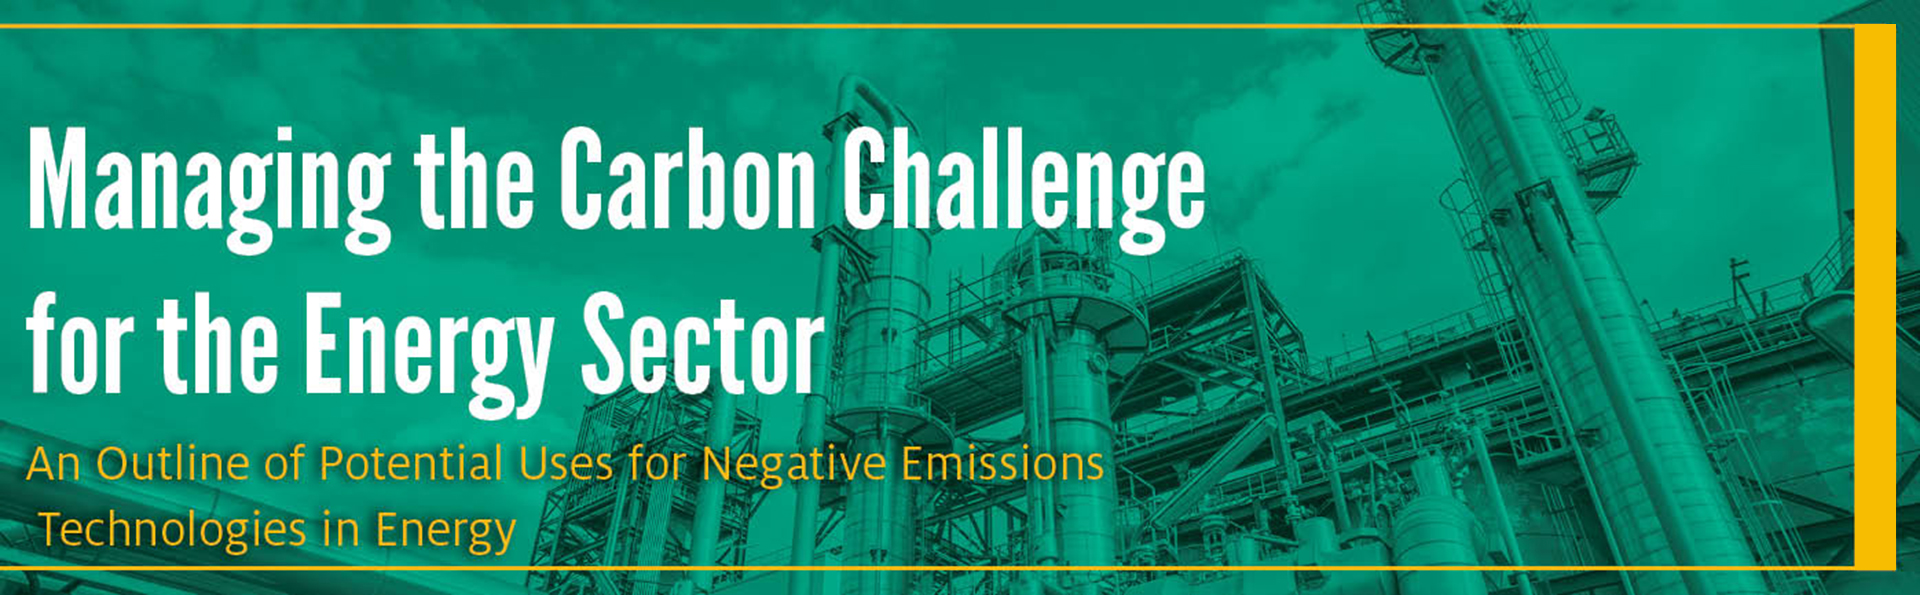 Managing the Carbon Challenge for the Energy Sector